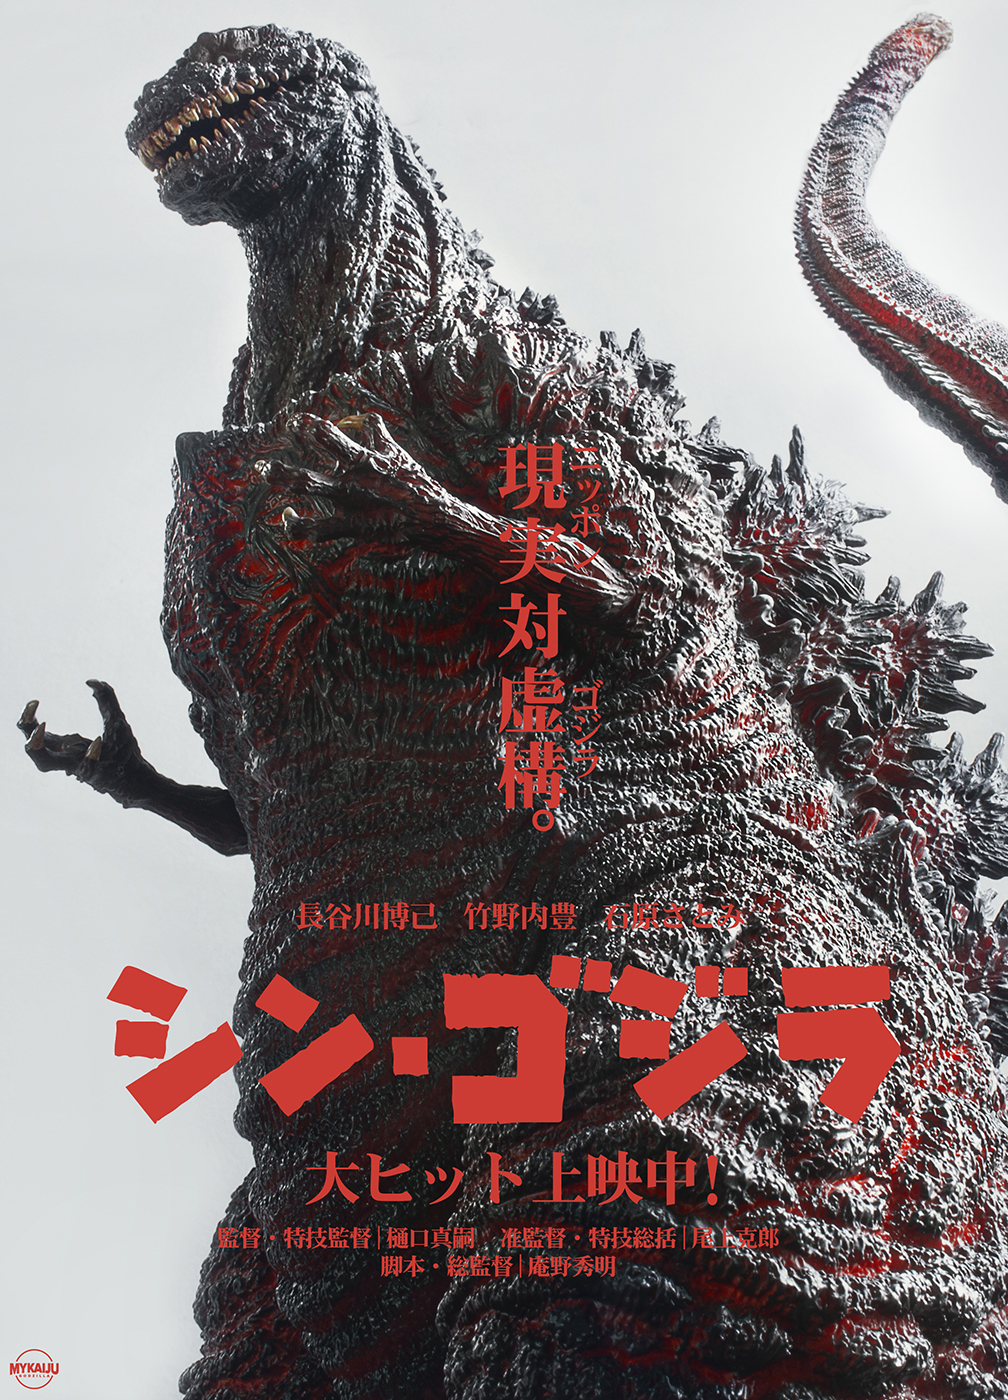 Shin Godzilla movie poster composite using the X-Plus Yuji Sakai Shin Godzilla vinyl figure.